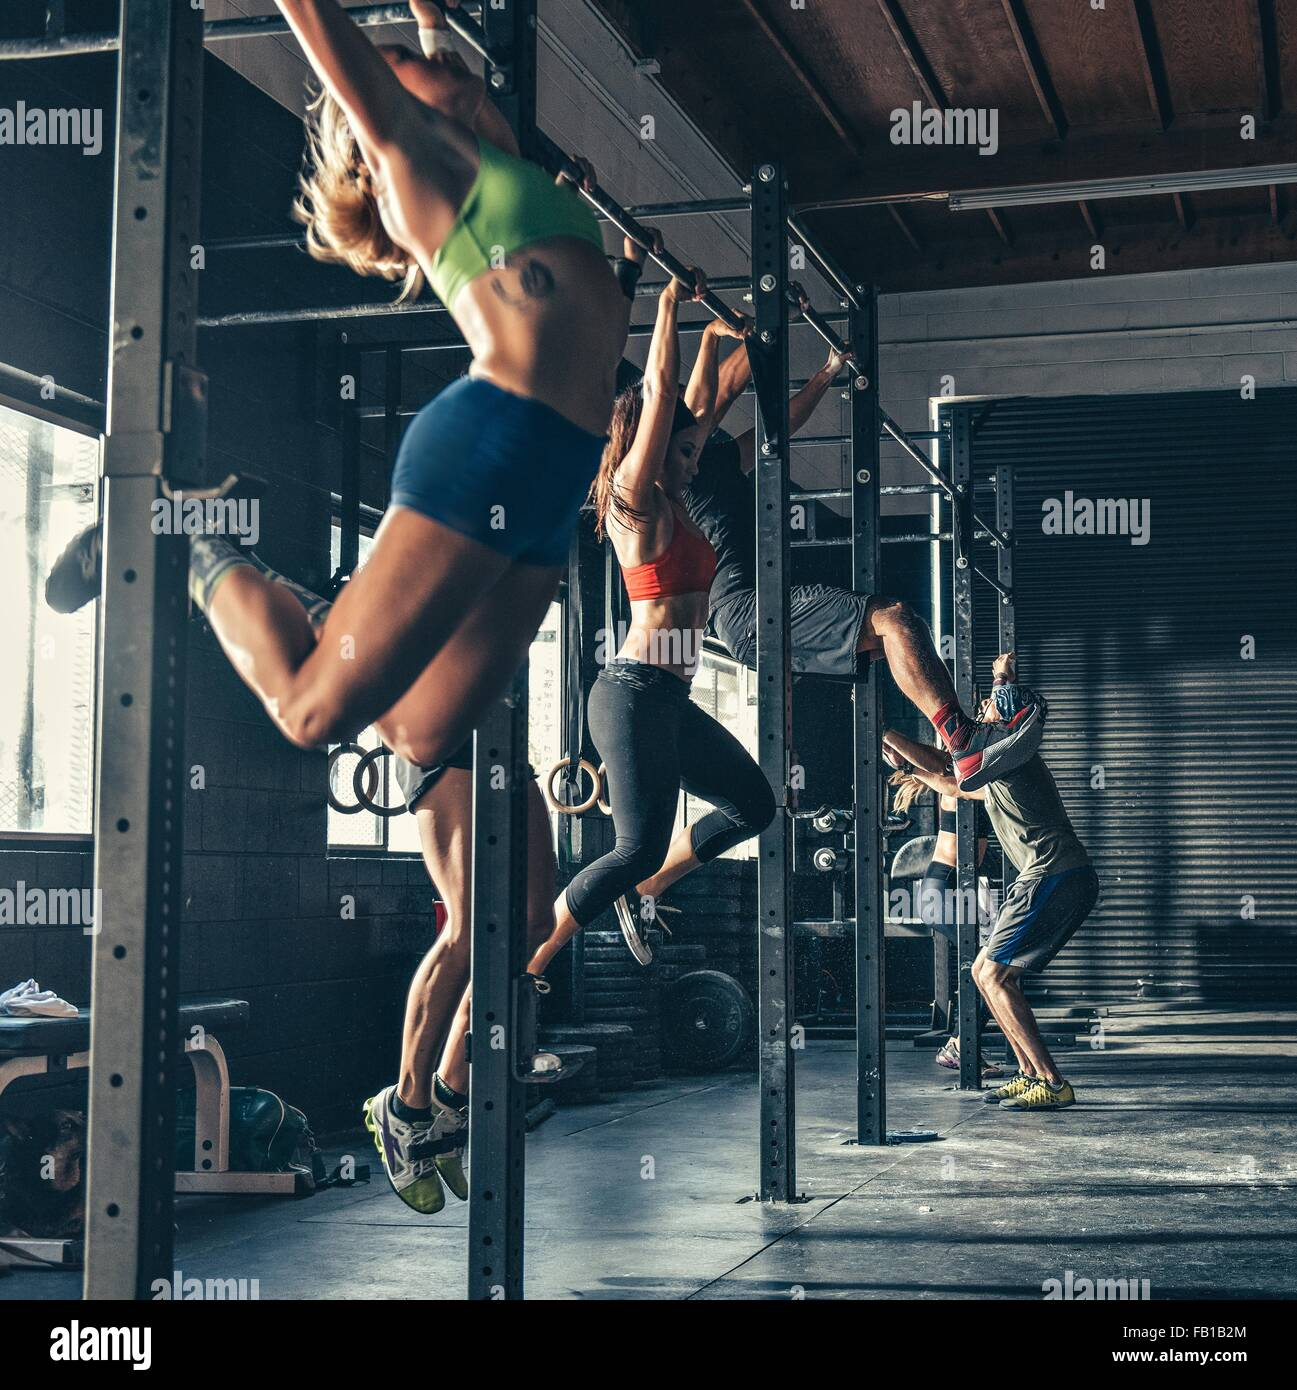 Row of people training on exercise bar in gym - Stock Image